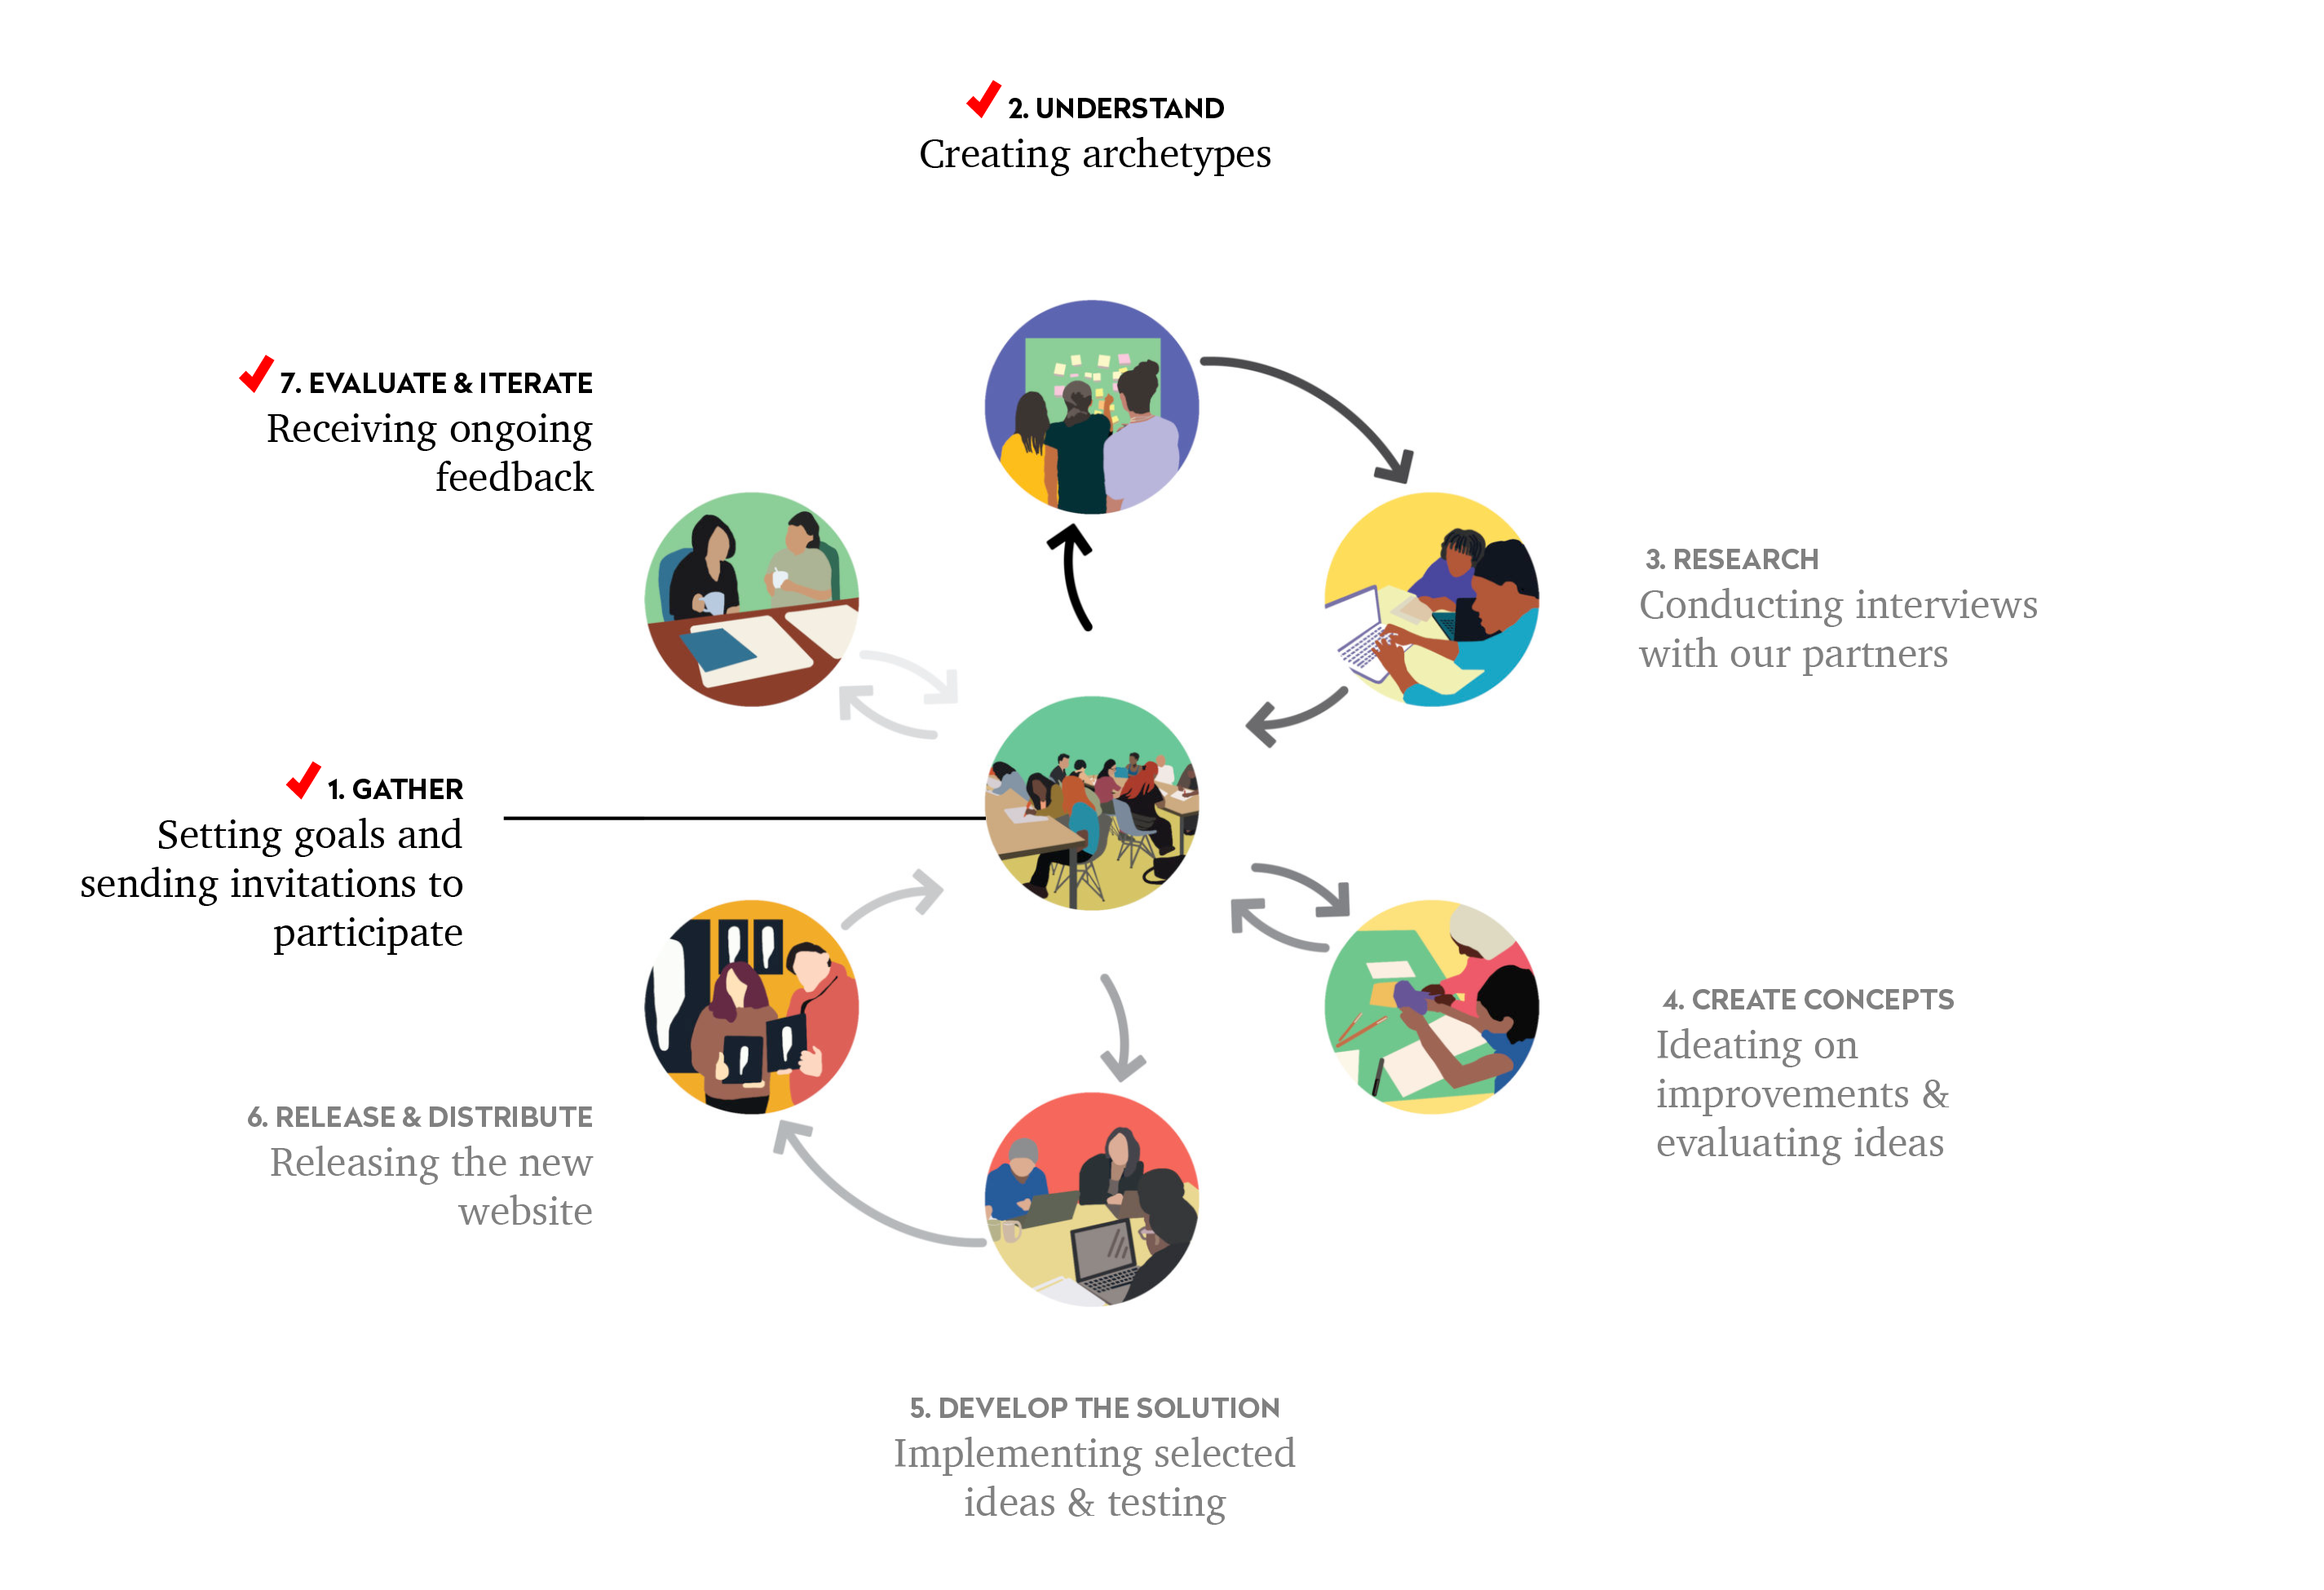 Infographic representing the seven parts of the codesign process: 1. Gather, 2. Understand, 3. Research, 4. Create Concepts, 5. Develop the solution, 6. Release and distribute, 7. Evaluate and iterate. Each step in the cycle connects back to 1. Gather.